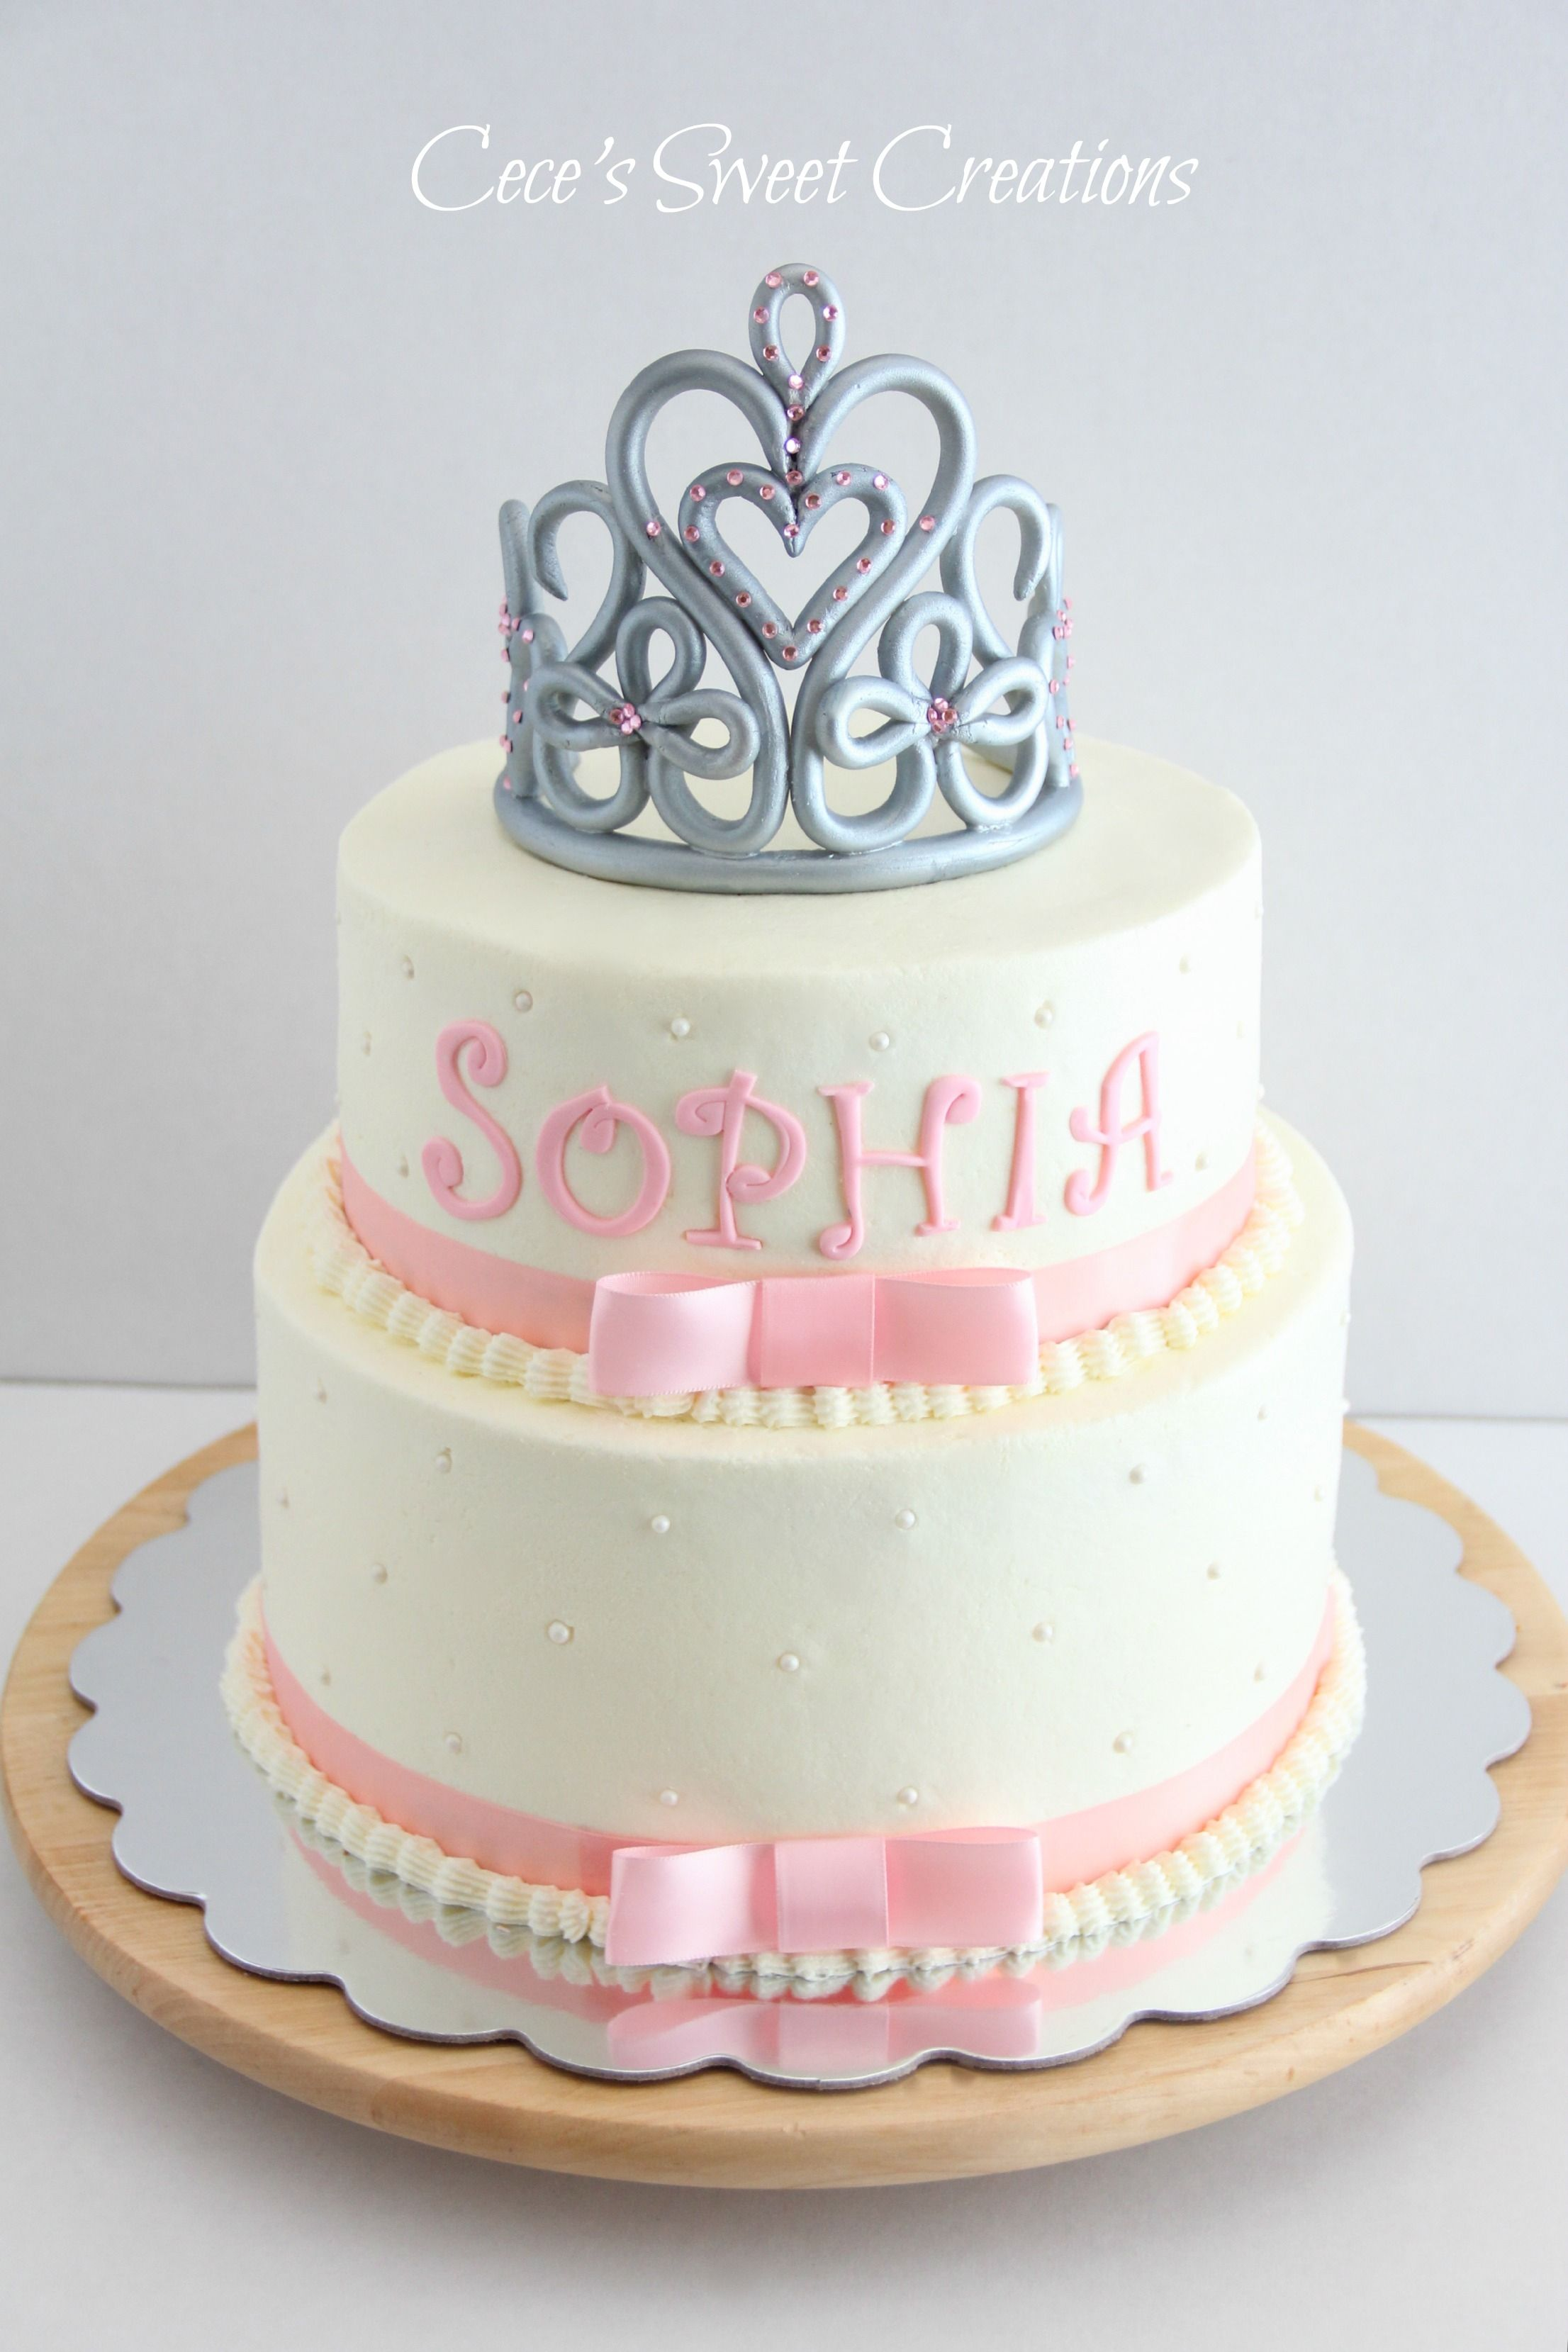 Princess Baby Shower Cake - 2 tier Buttercream Princess Baby Shower cake.  Tiara was freestyle and made from MMF and Gum paste. Thank you for looking  <3